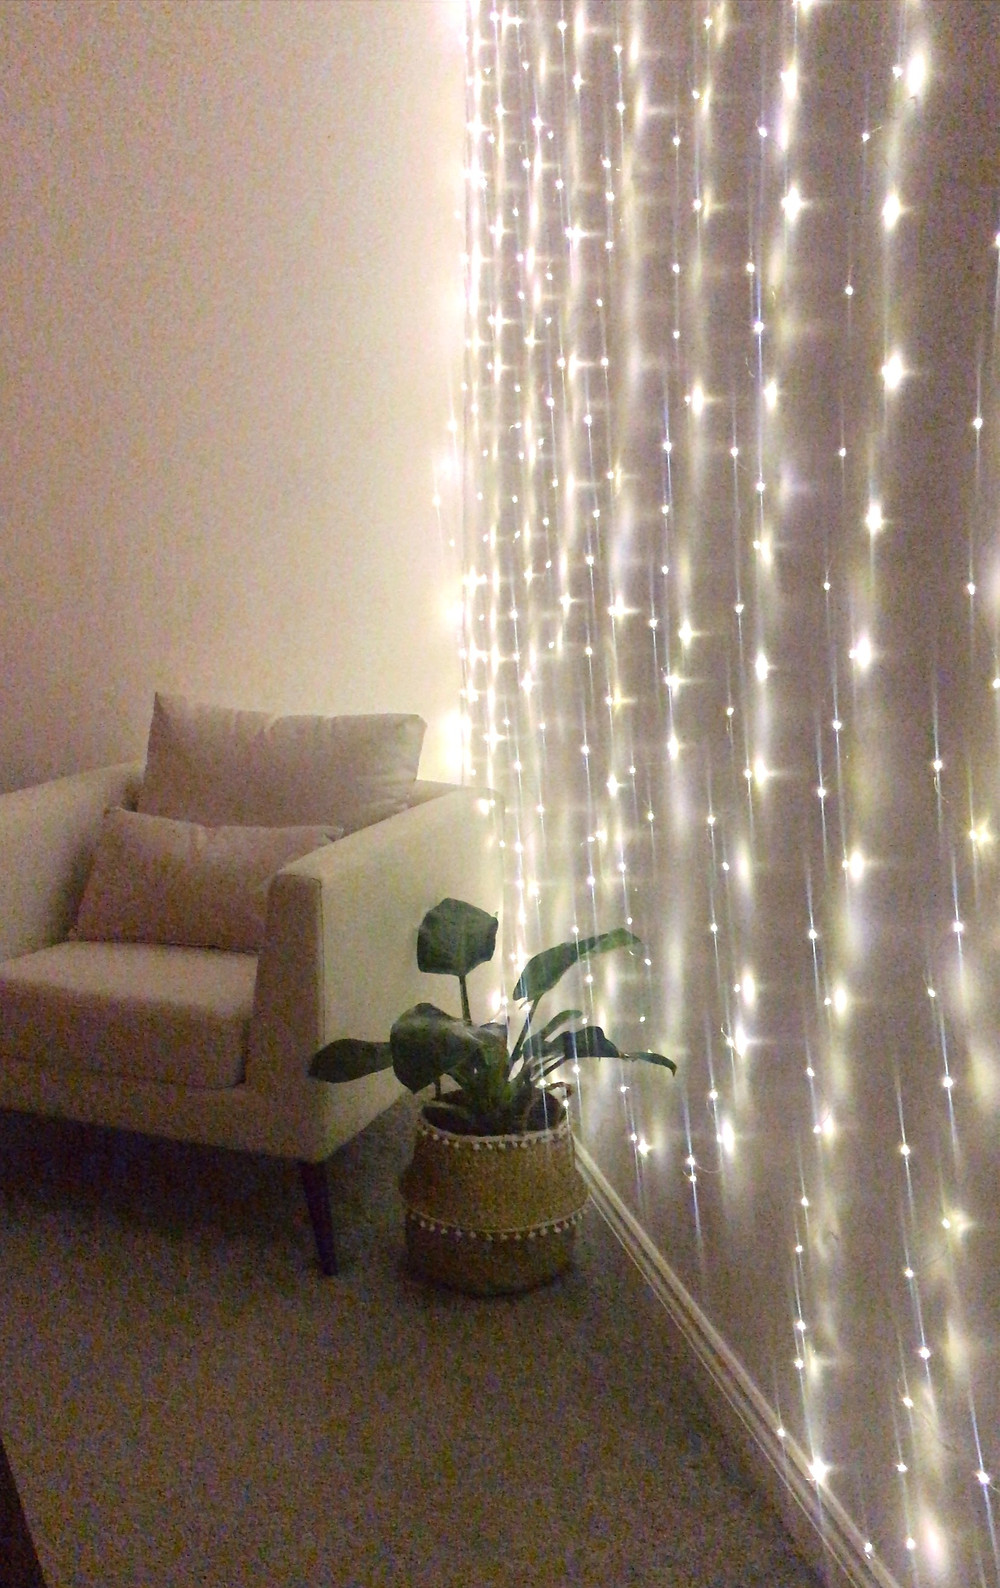 Fairy lit wall with beige arm chair and plant in a basket pot besides it